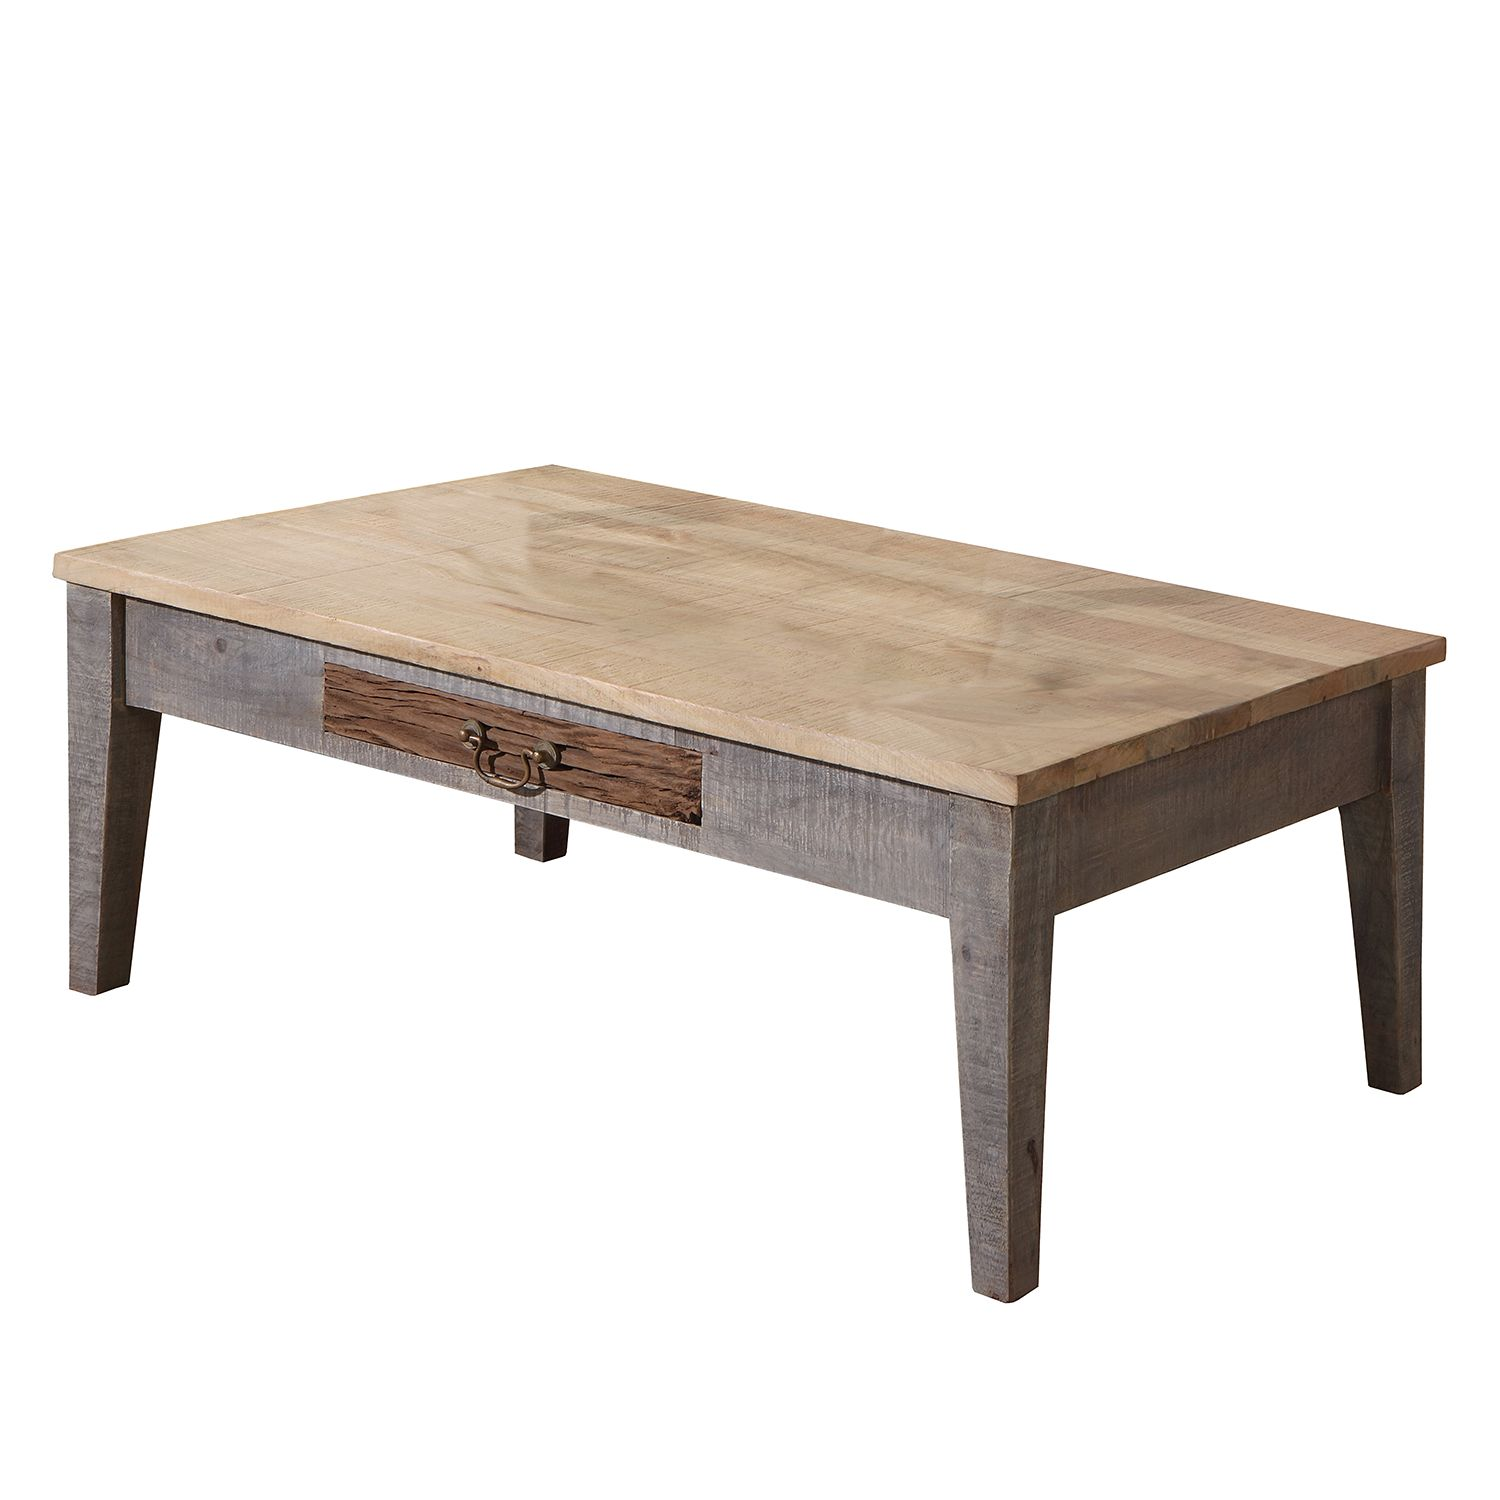 Table basse Houston